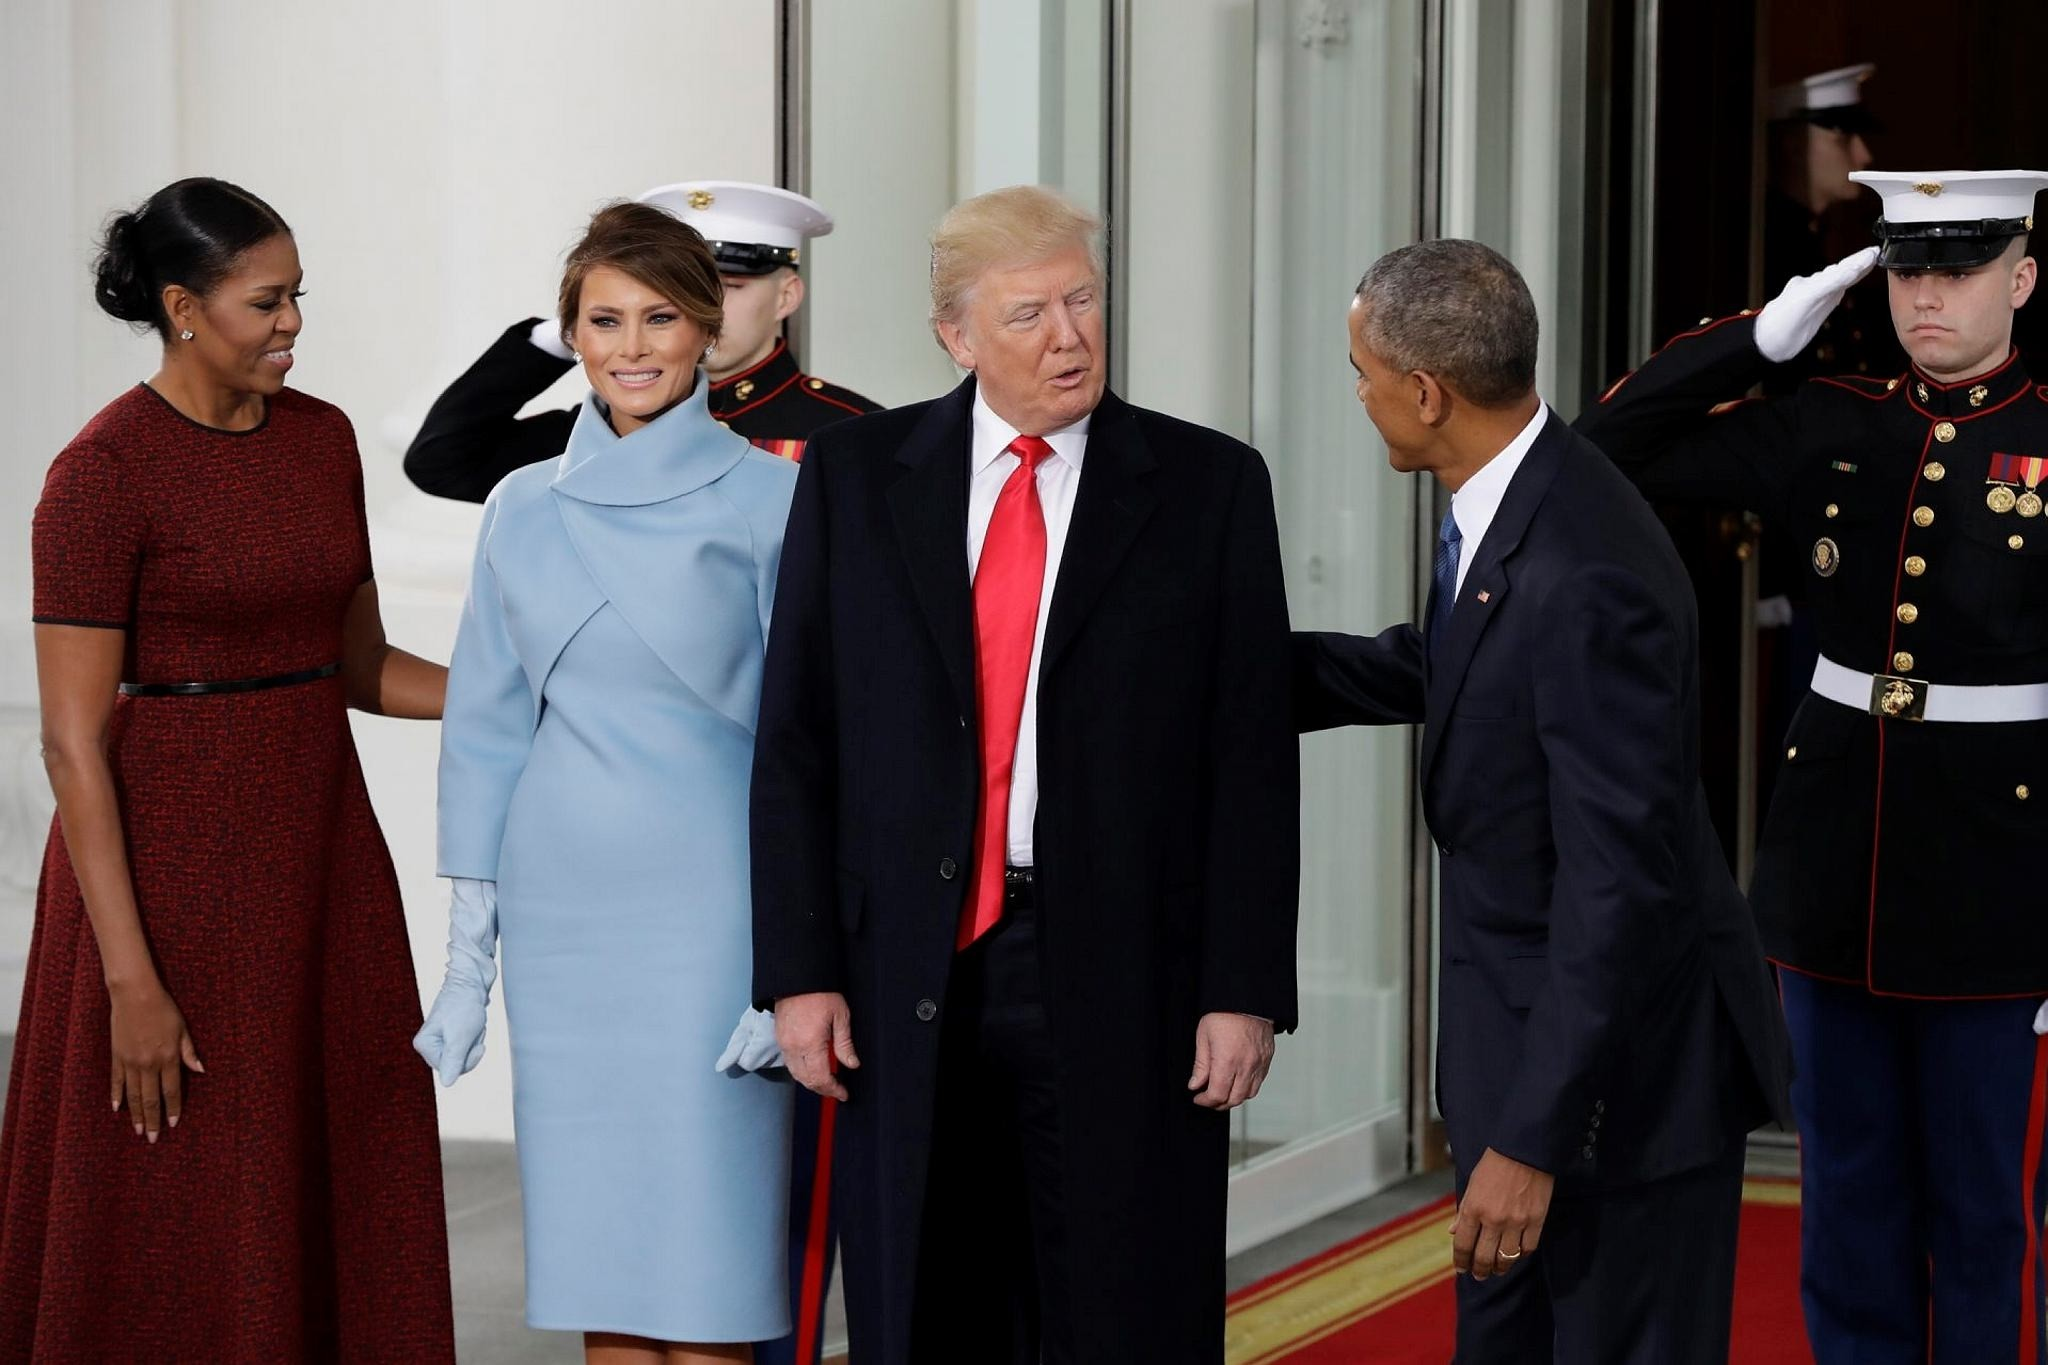 President Barack Obama and first lady Michelle Obama greet President-elect Donald Trump and his wife Melania at the White House in Washington, Friday, Jan. 20, 2017. (AP Photo)